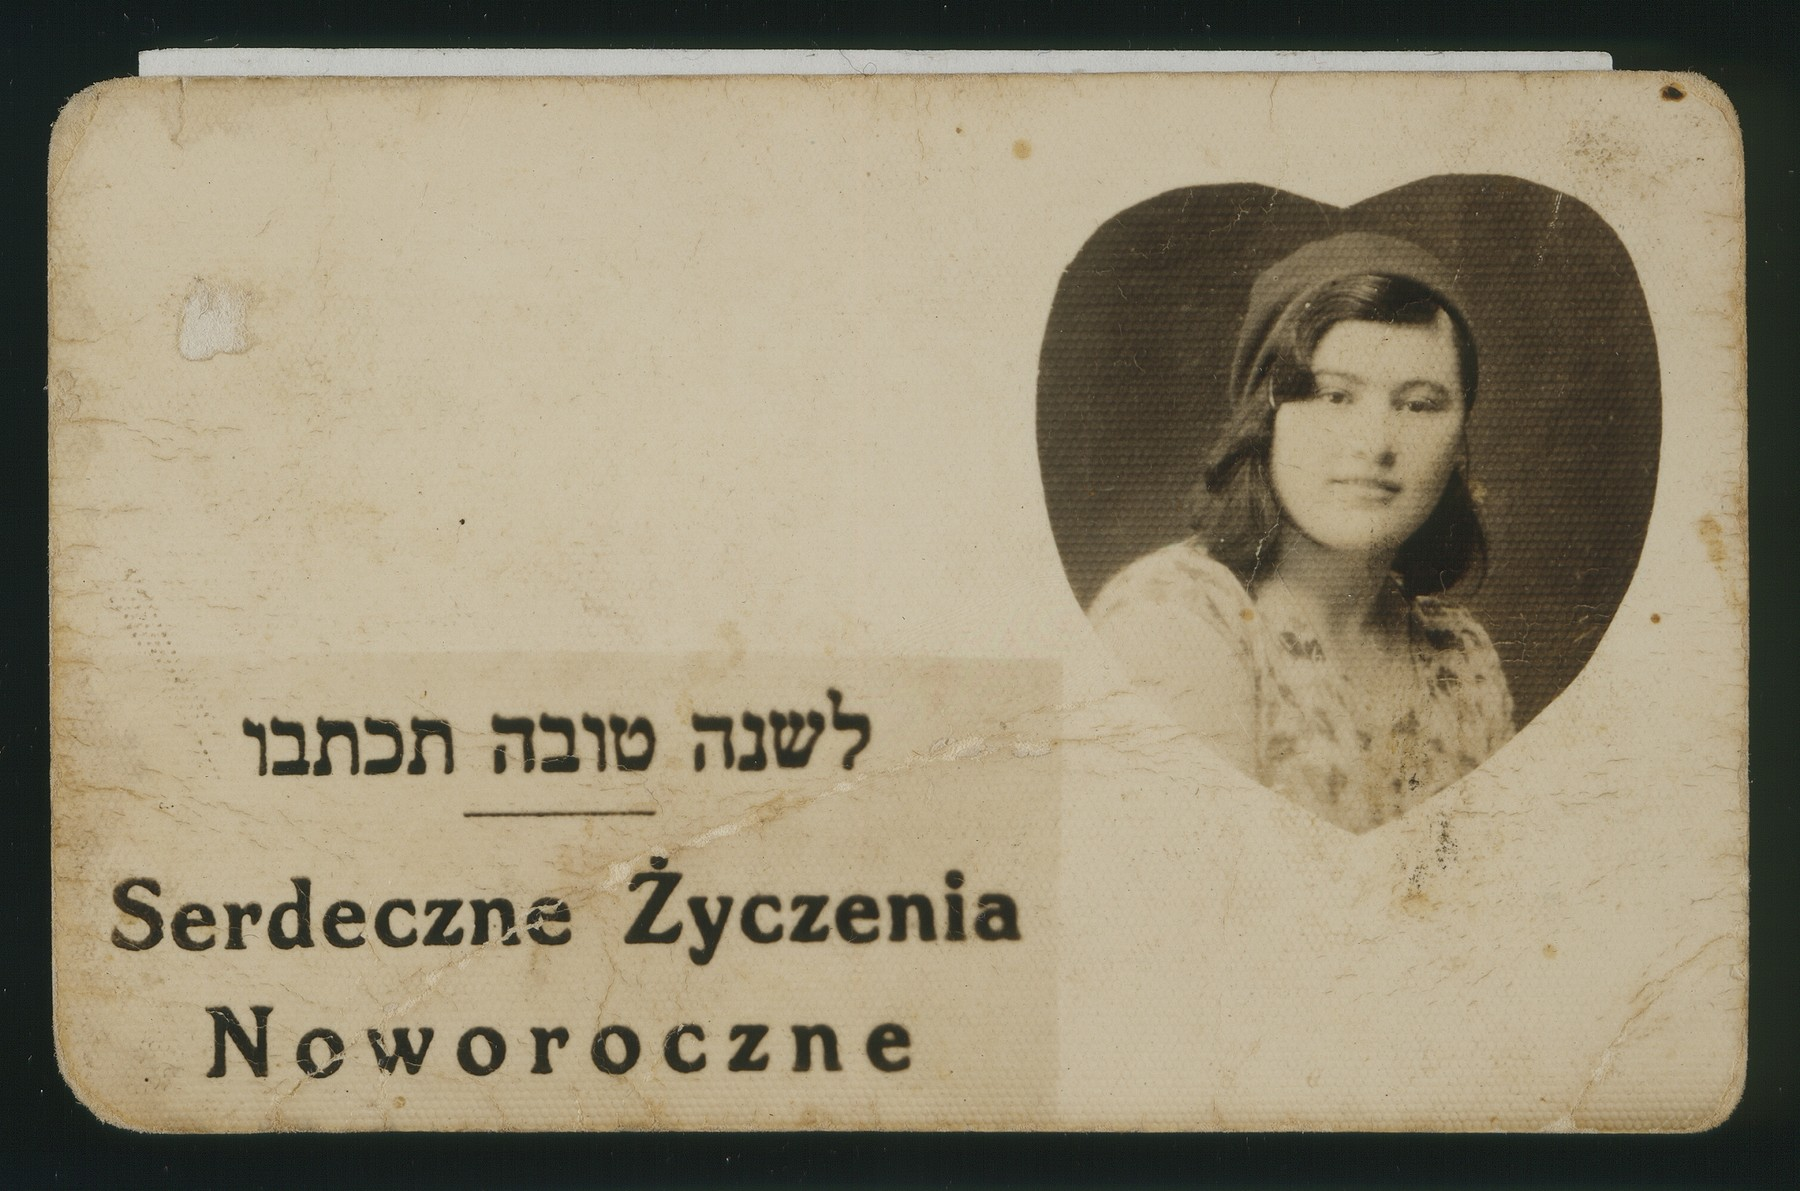 Jewish New Years Card written in both Polish and Hebrew with a photograph of Sarah Plotnik.